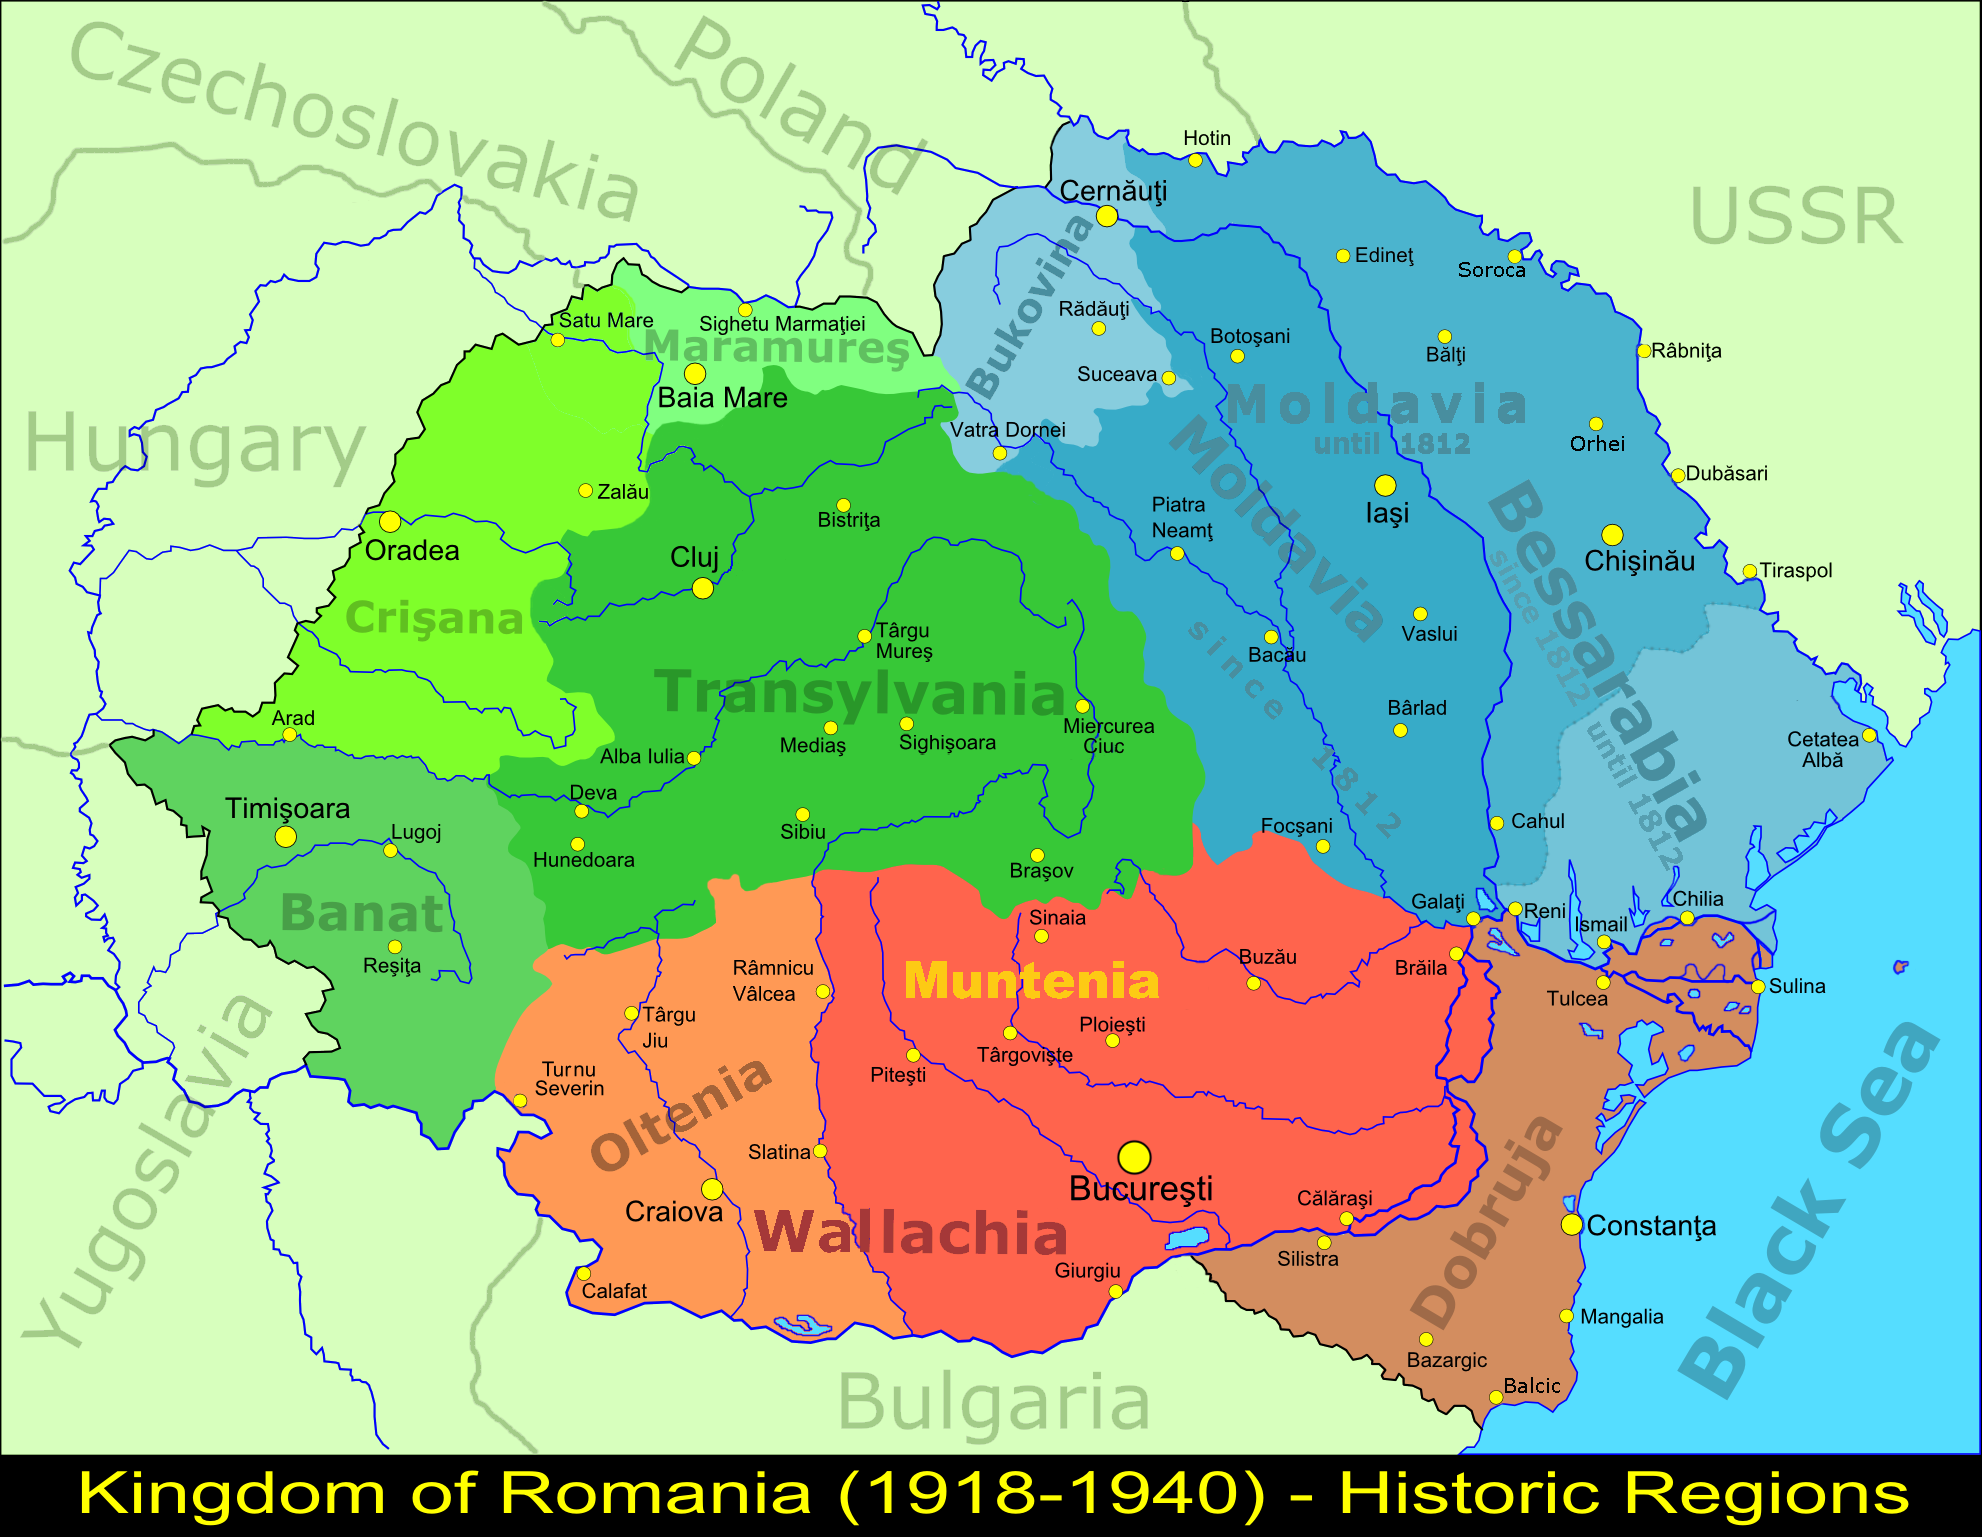 map of the regions of greater romania 1921 1940 with all the